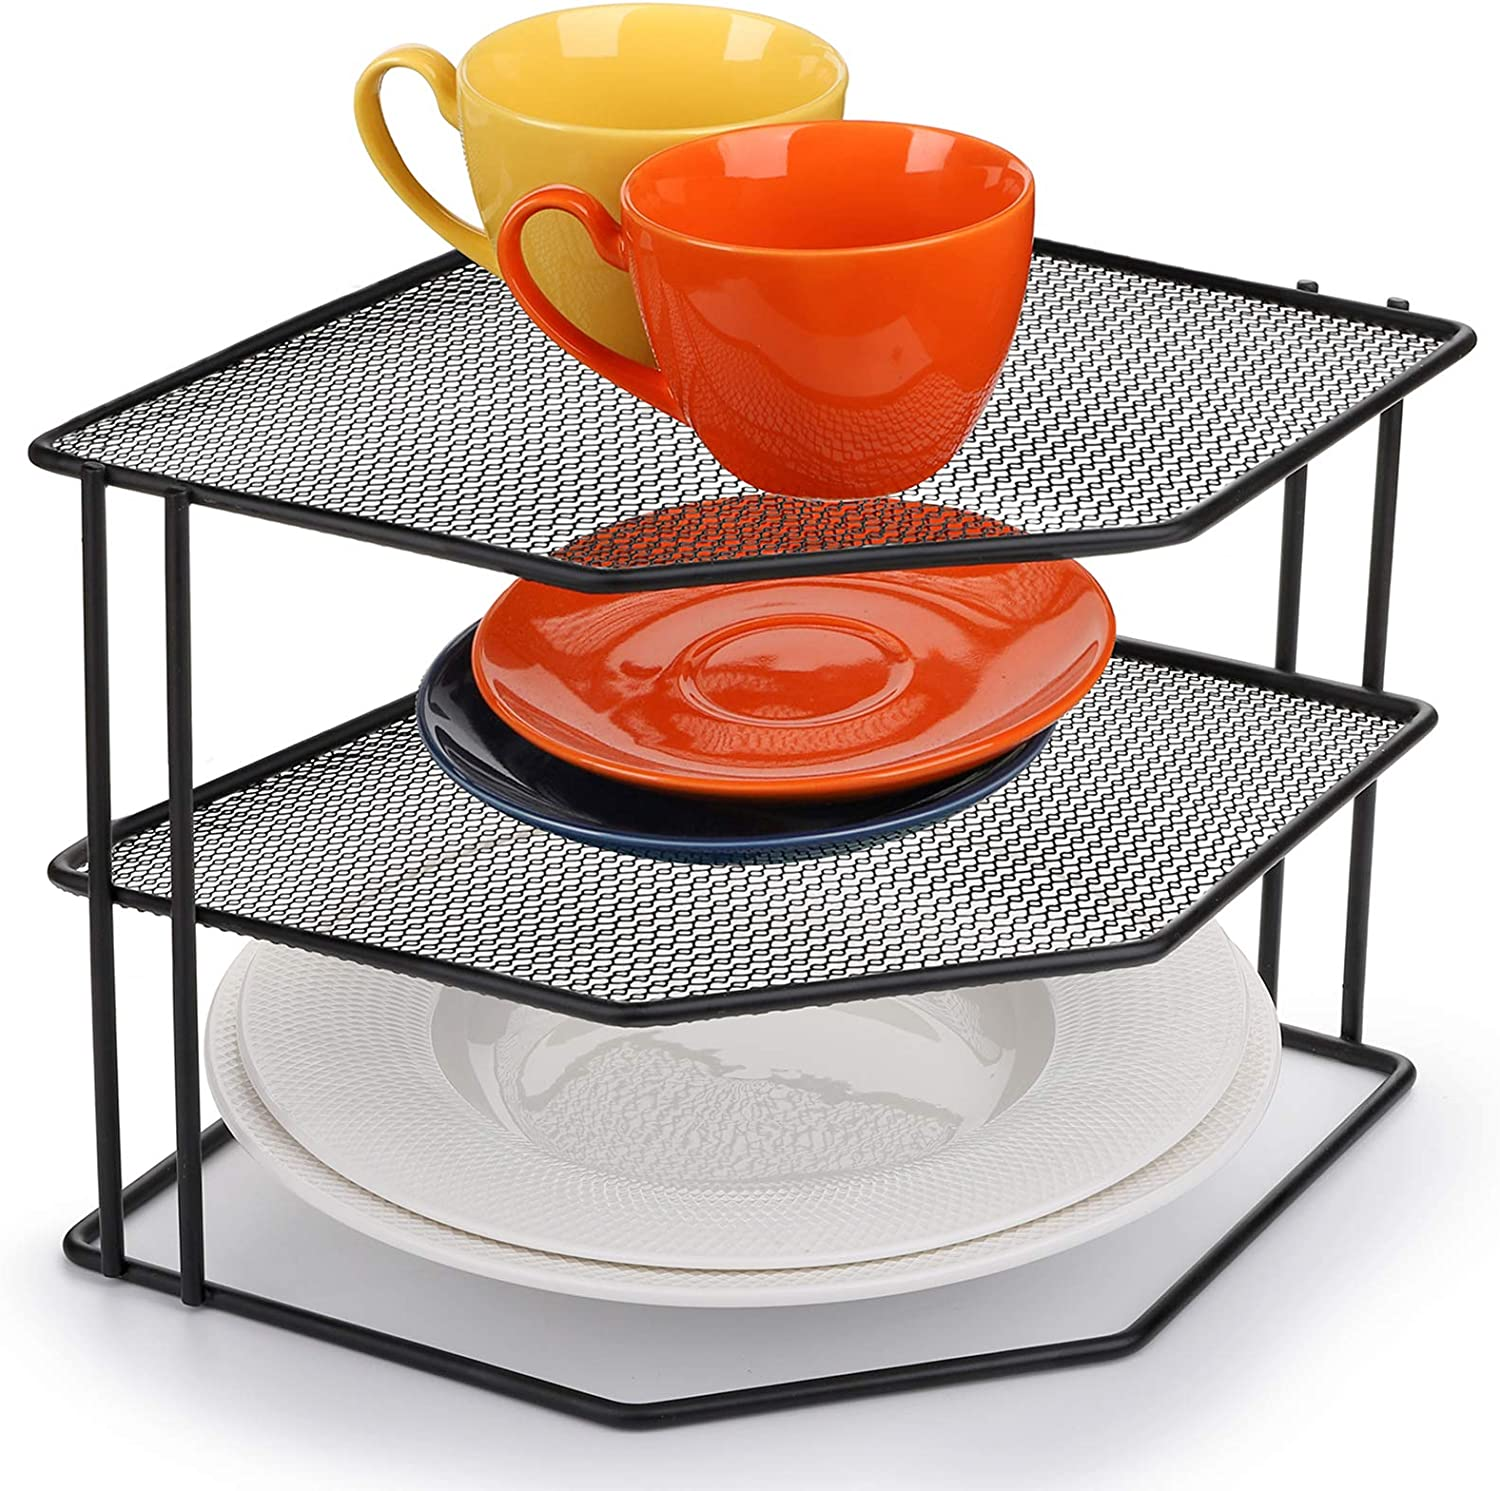 yarlung 3-Tier Cabinet Corner Shelf 9x9x7.5 Metal Inches Wire shipfree P SEAL limited product